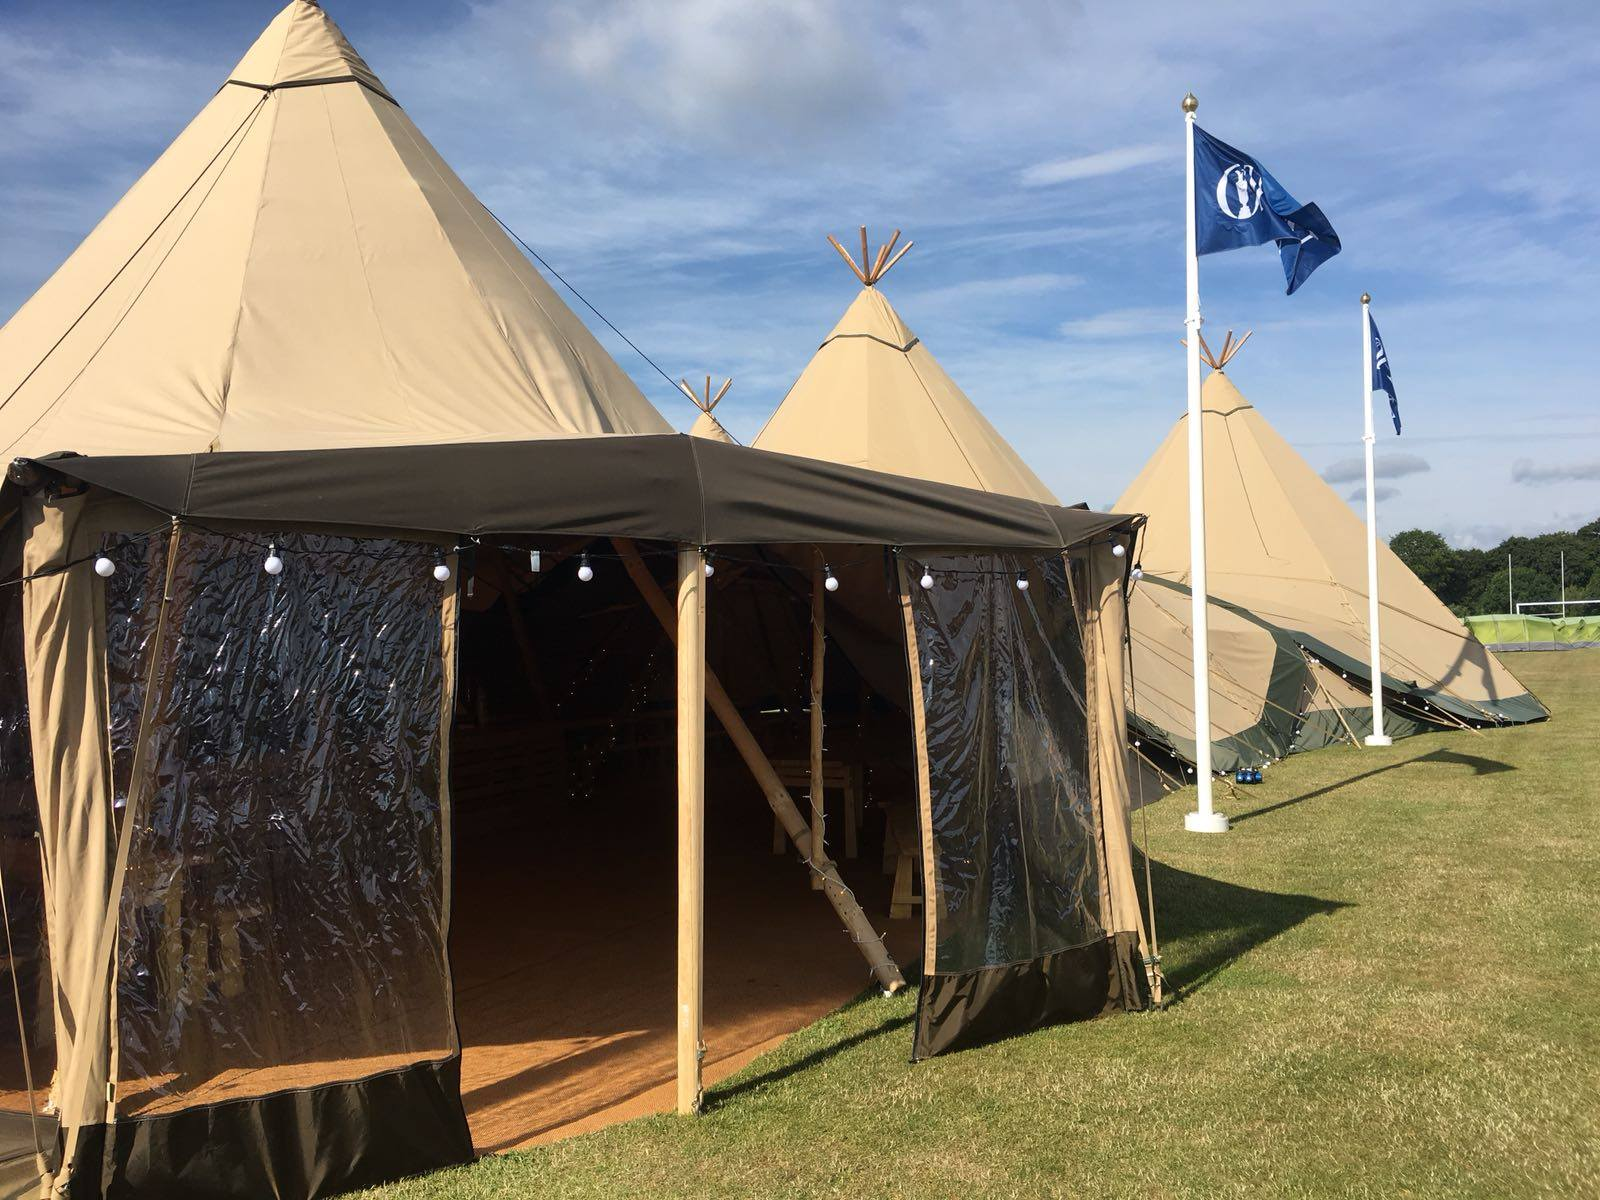 Welcoming entrance to the Giant Tipis Clubhouse at The Open Camping Village 2018